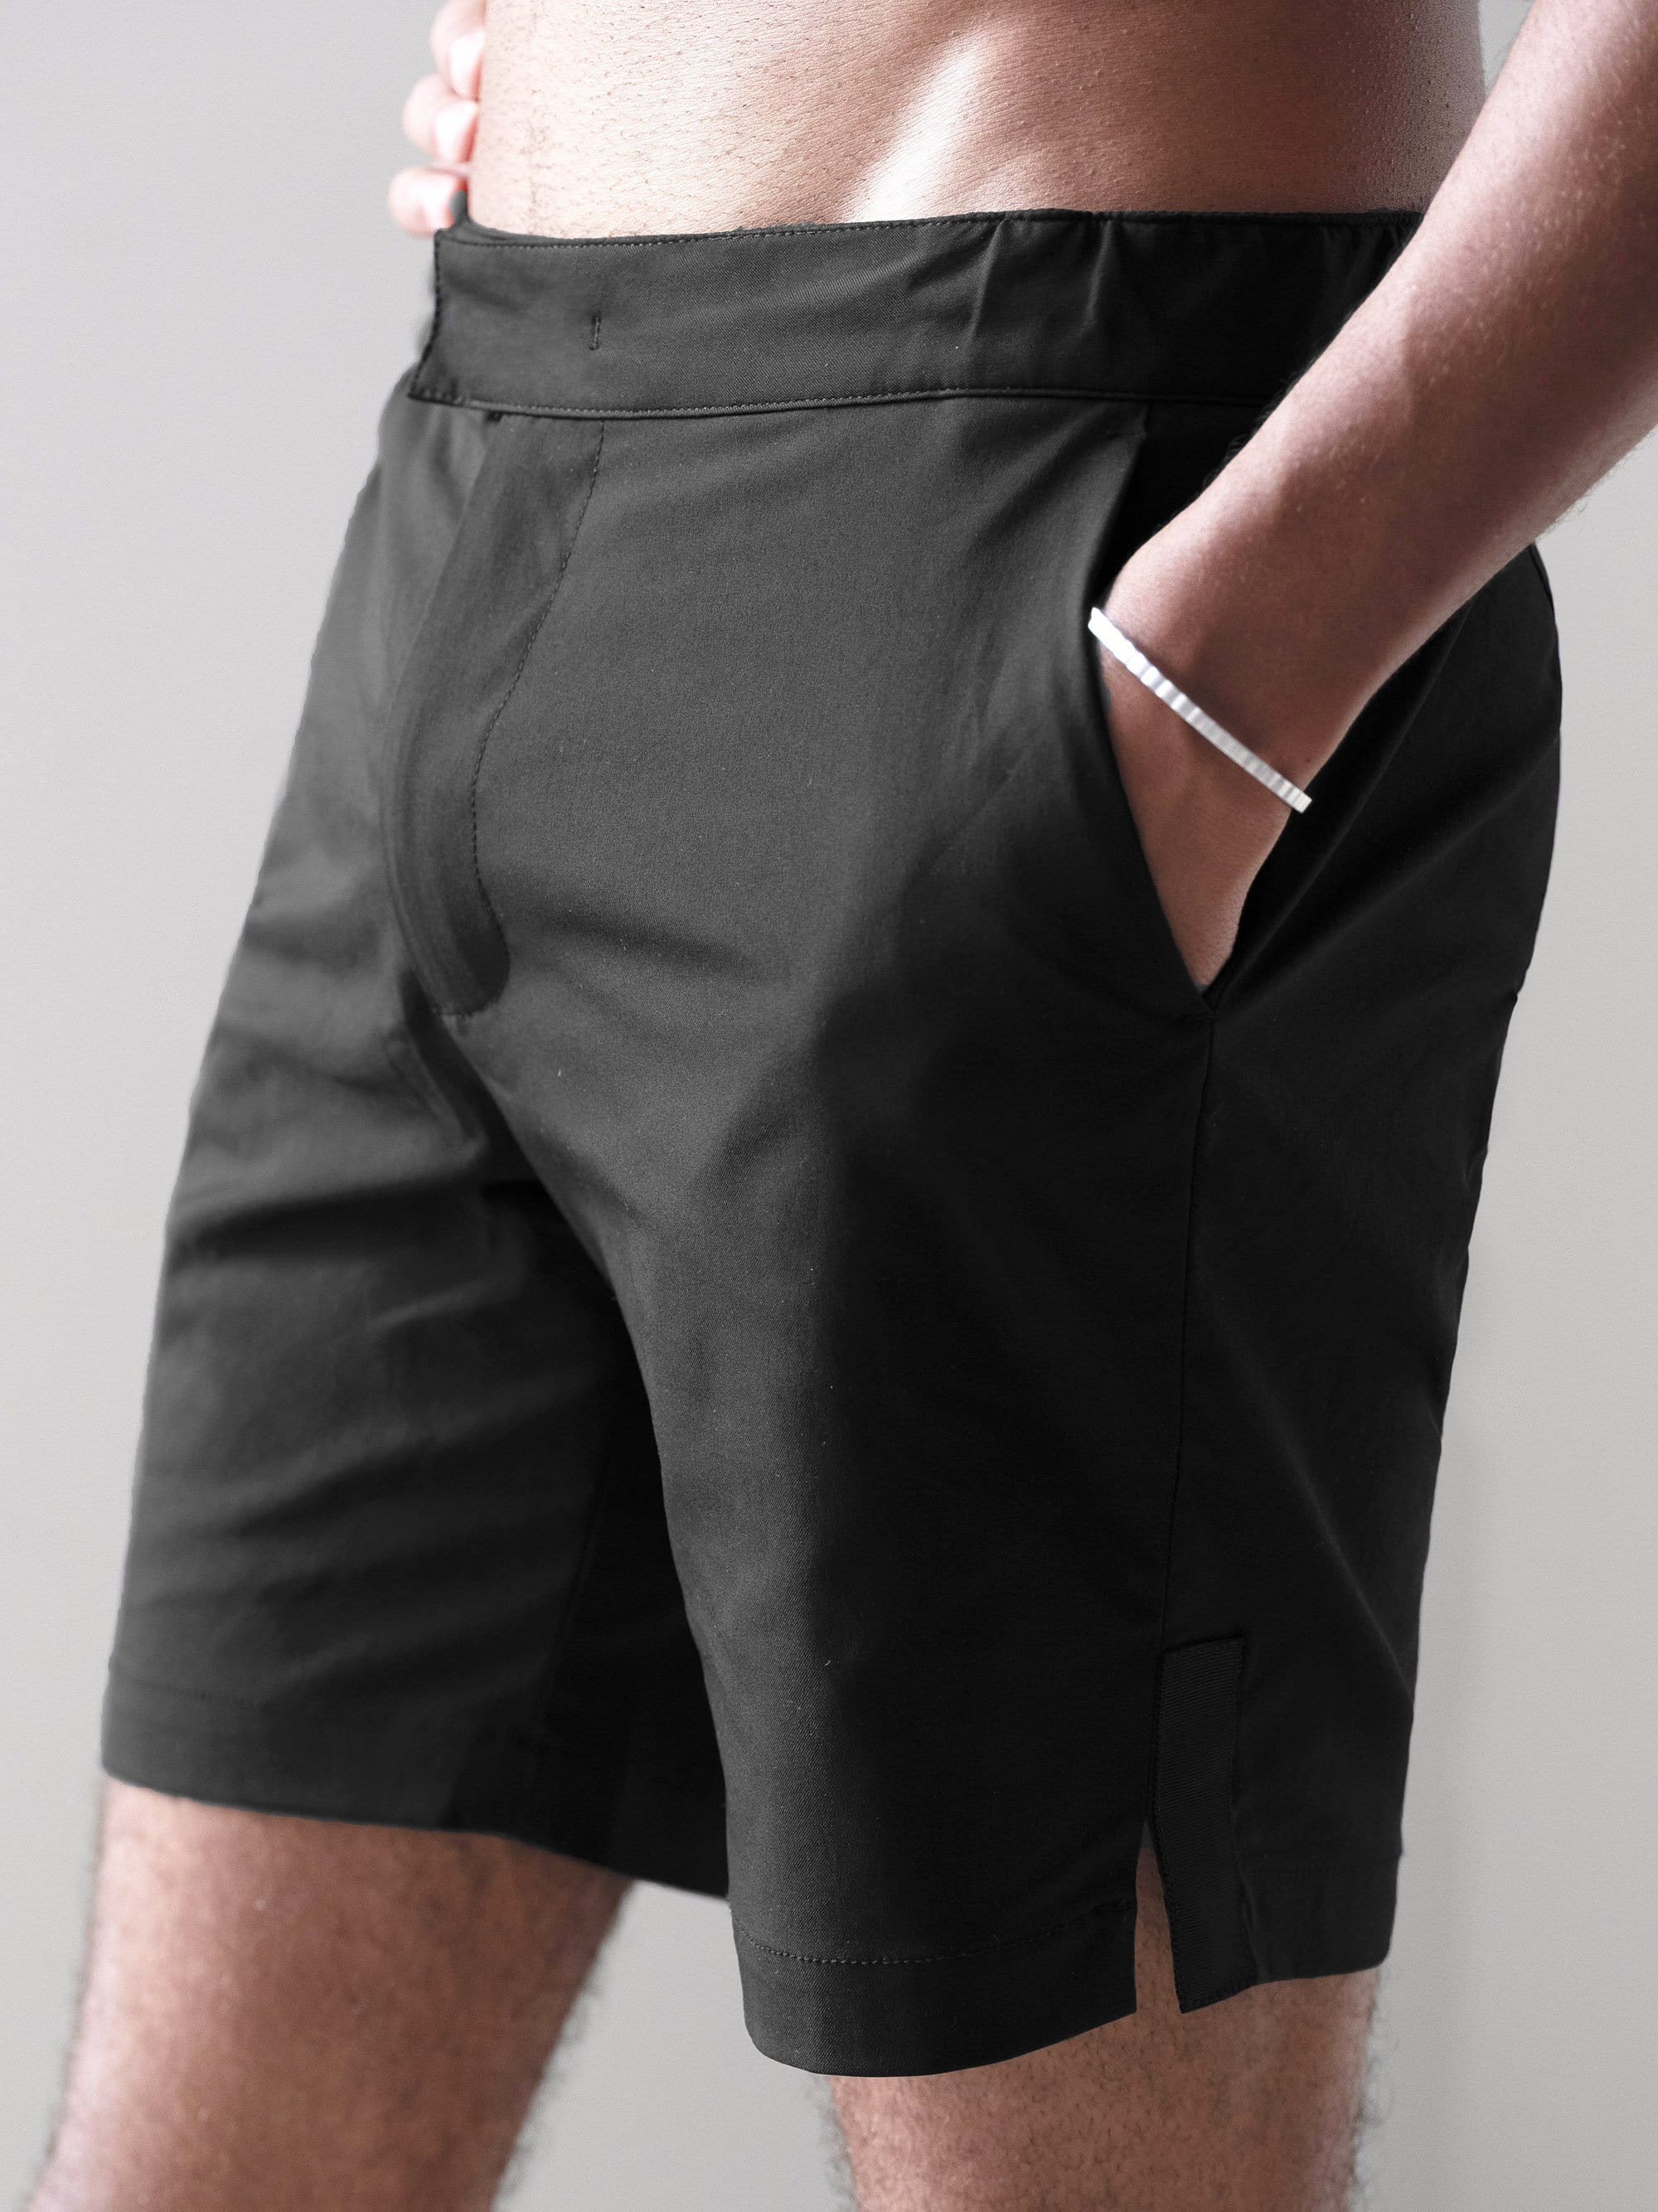 The Anywear Swim Short || Black | Recycled nylon without netting